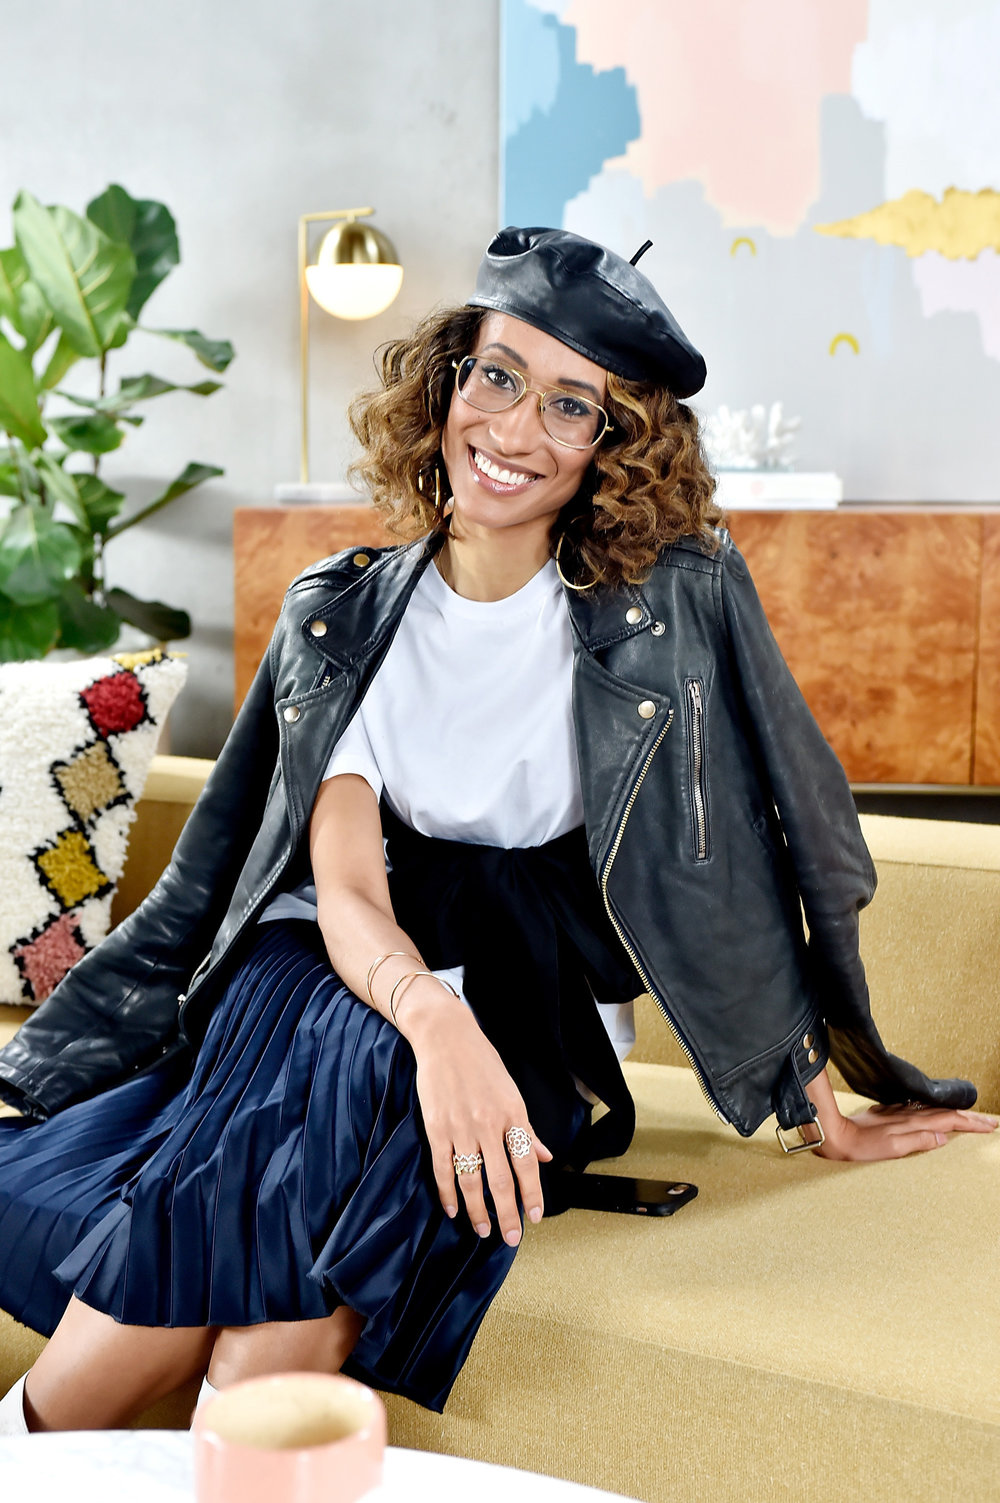 Elaine Welteroth, award-winning journalist and former editor-in-chief of Teen Vogue -